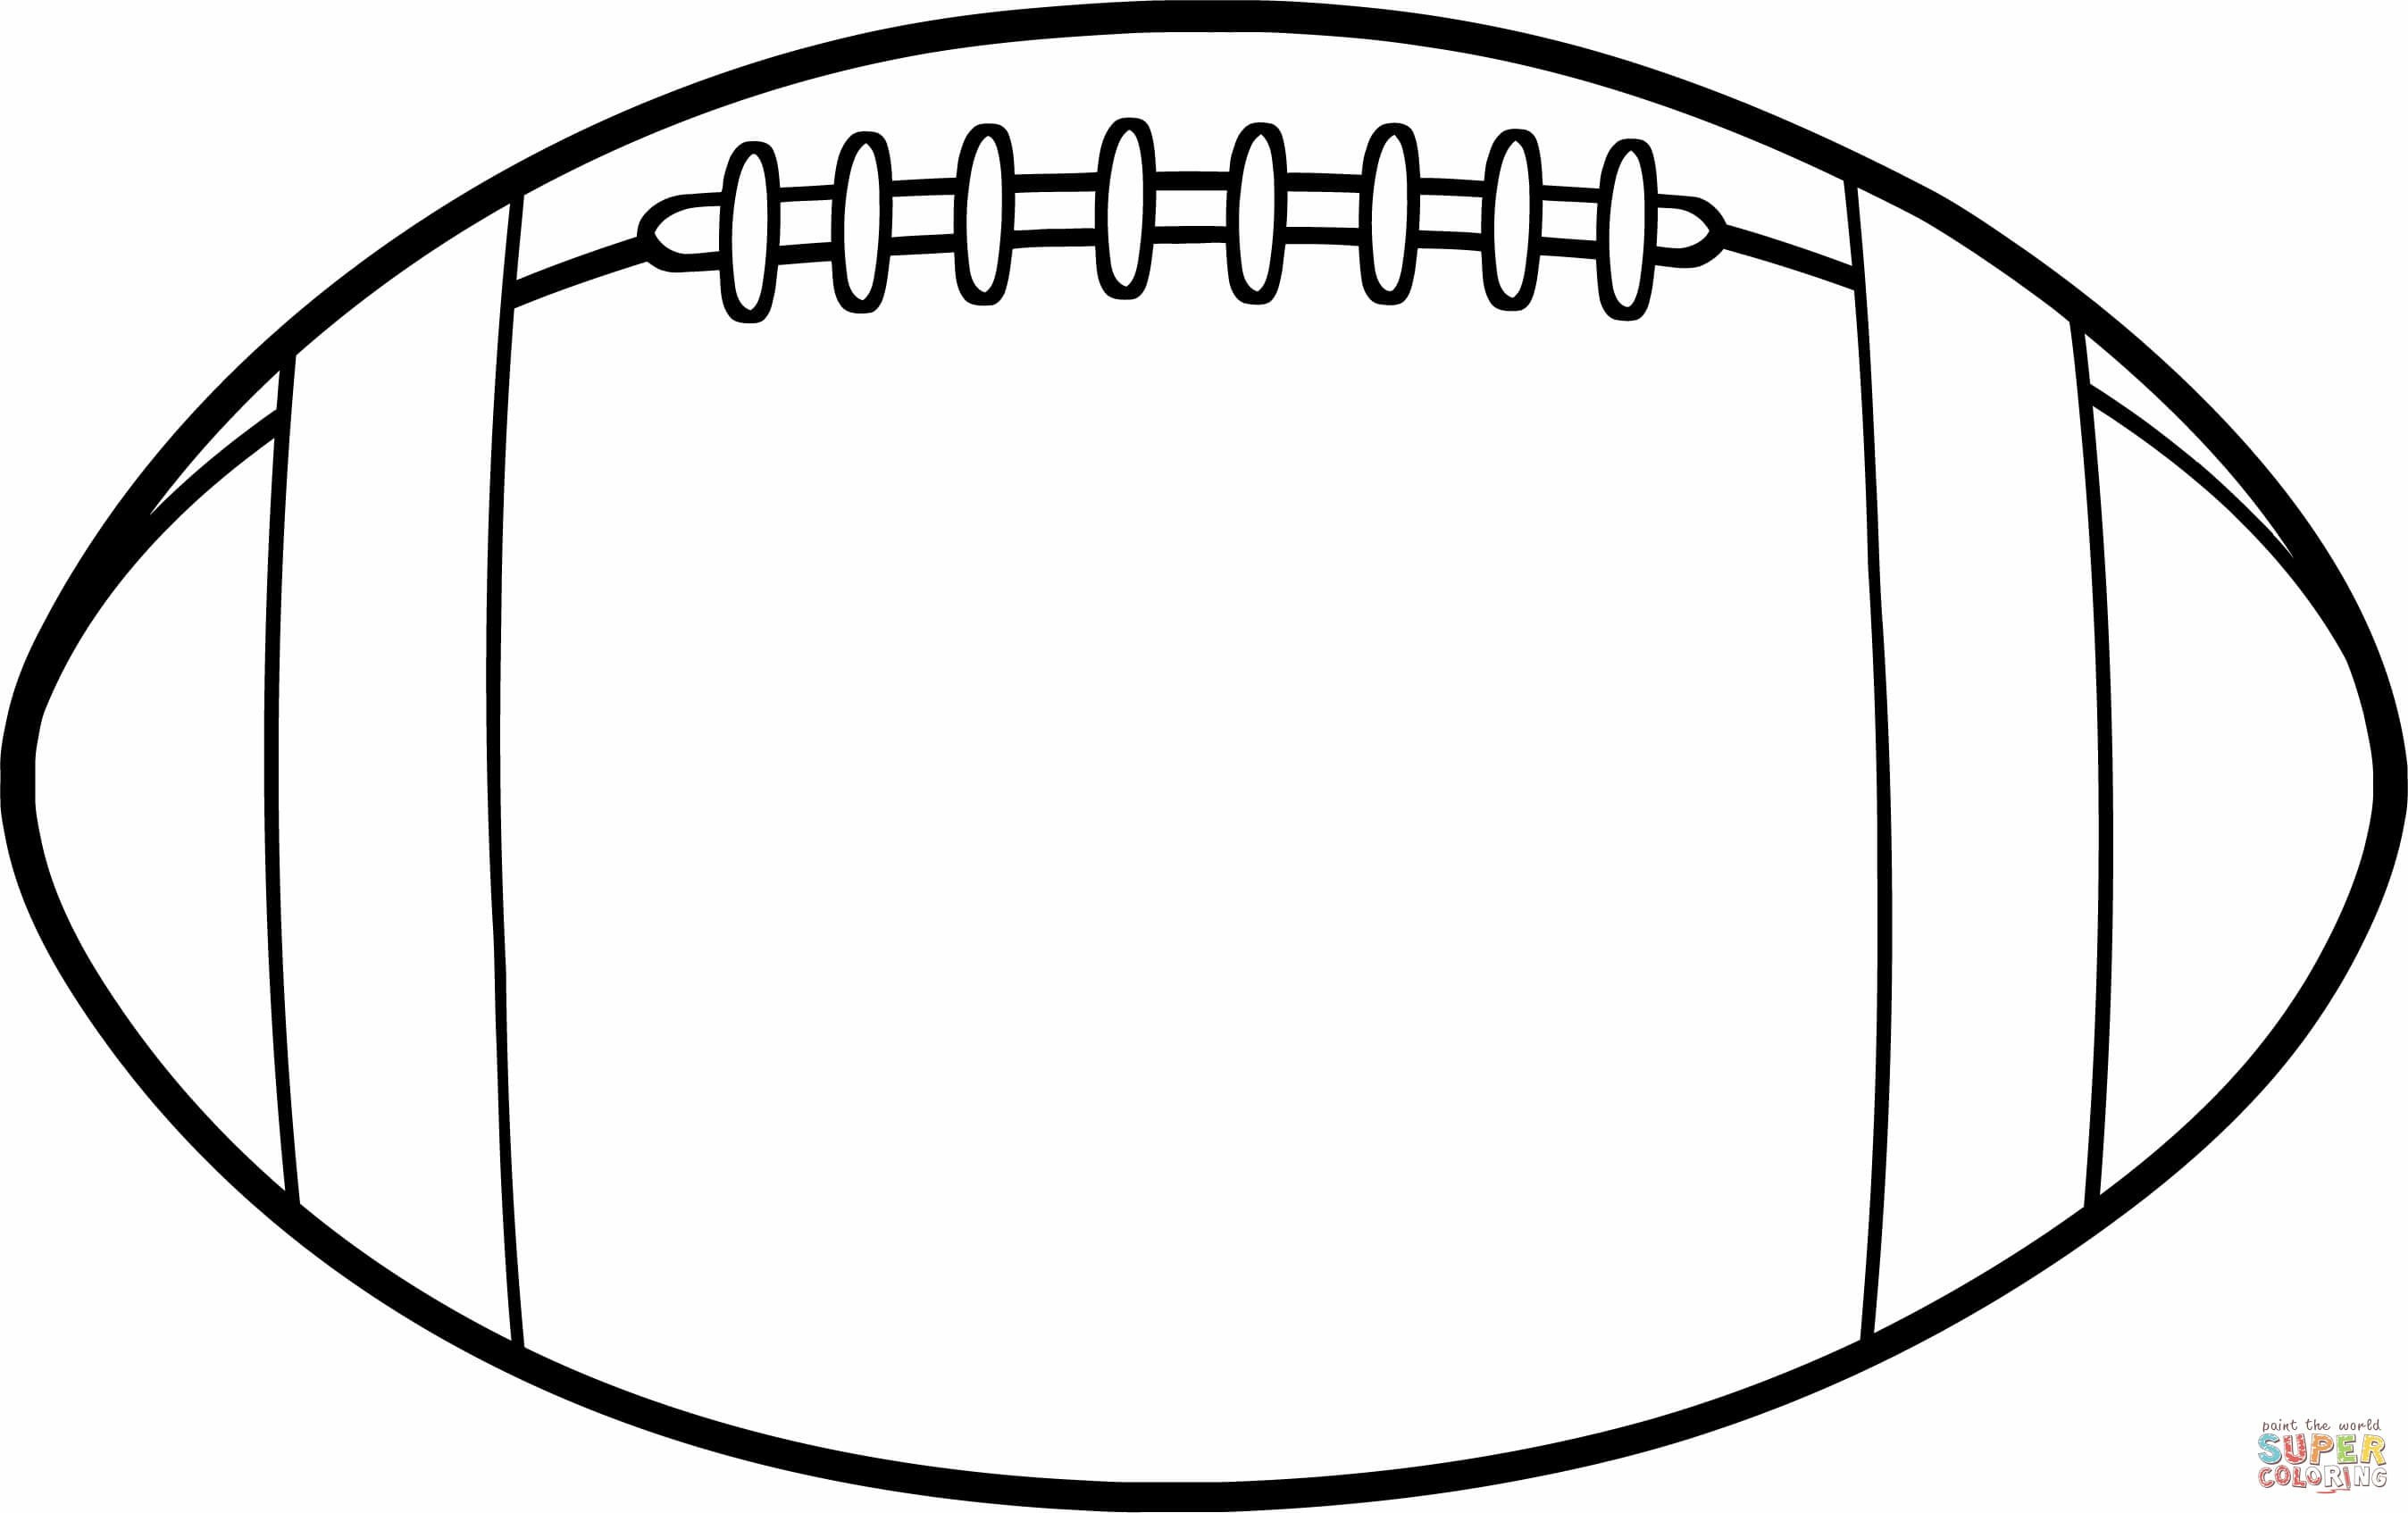 Coloring Pages : Coloring Pages Free Online Football Printable - Free Printable Football Templates